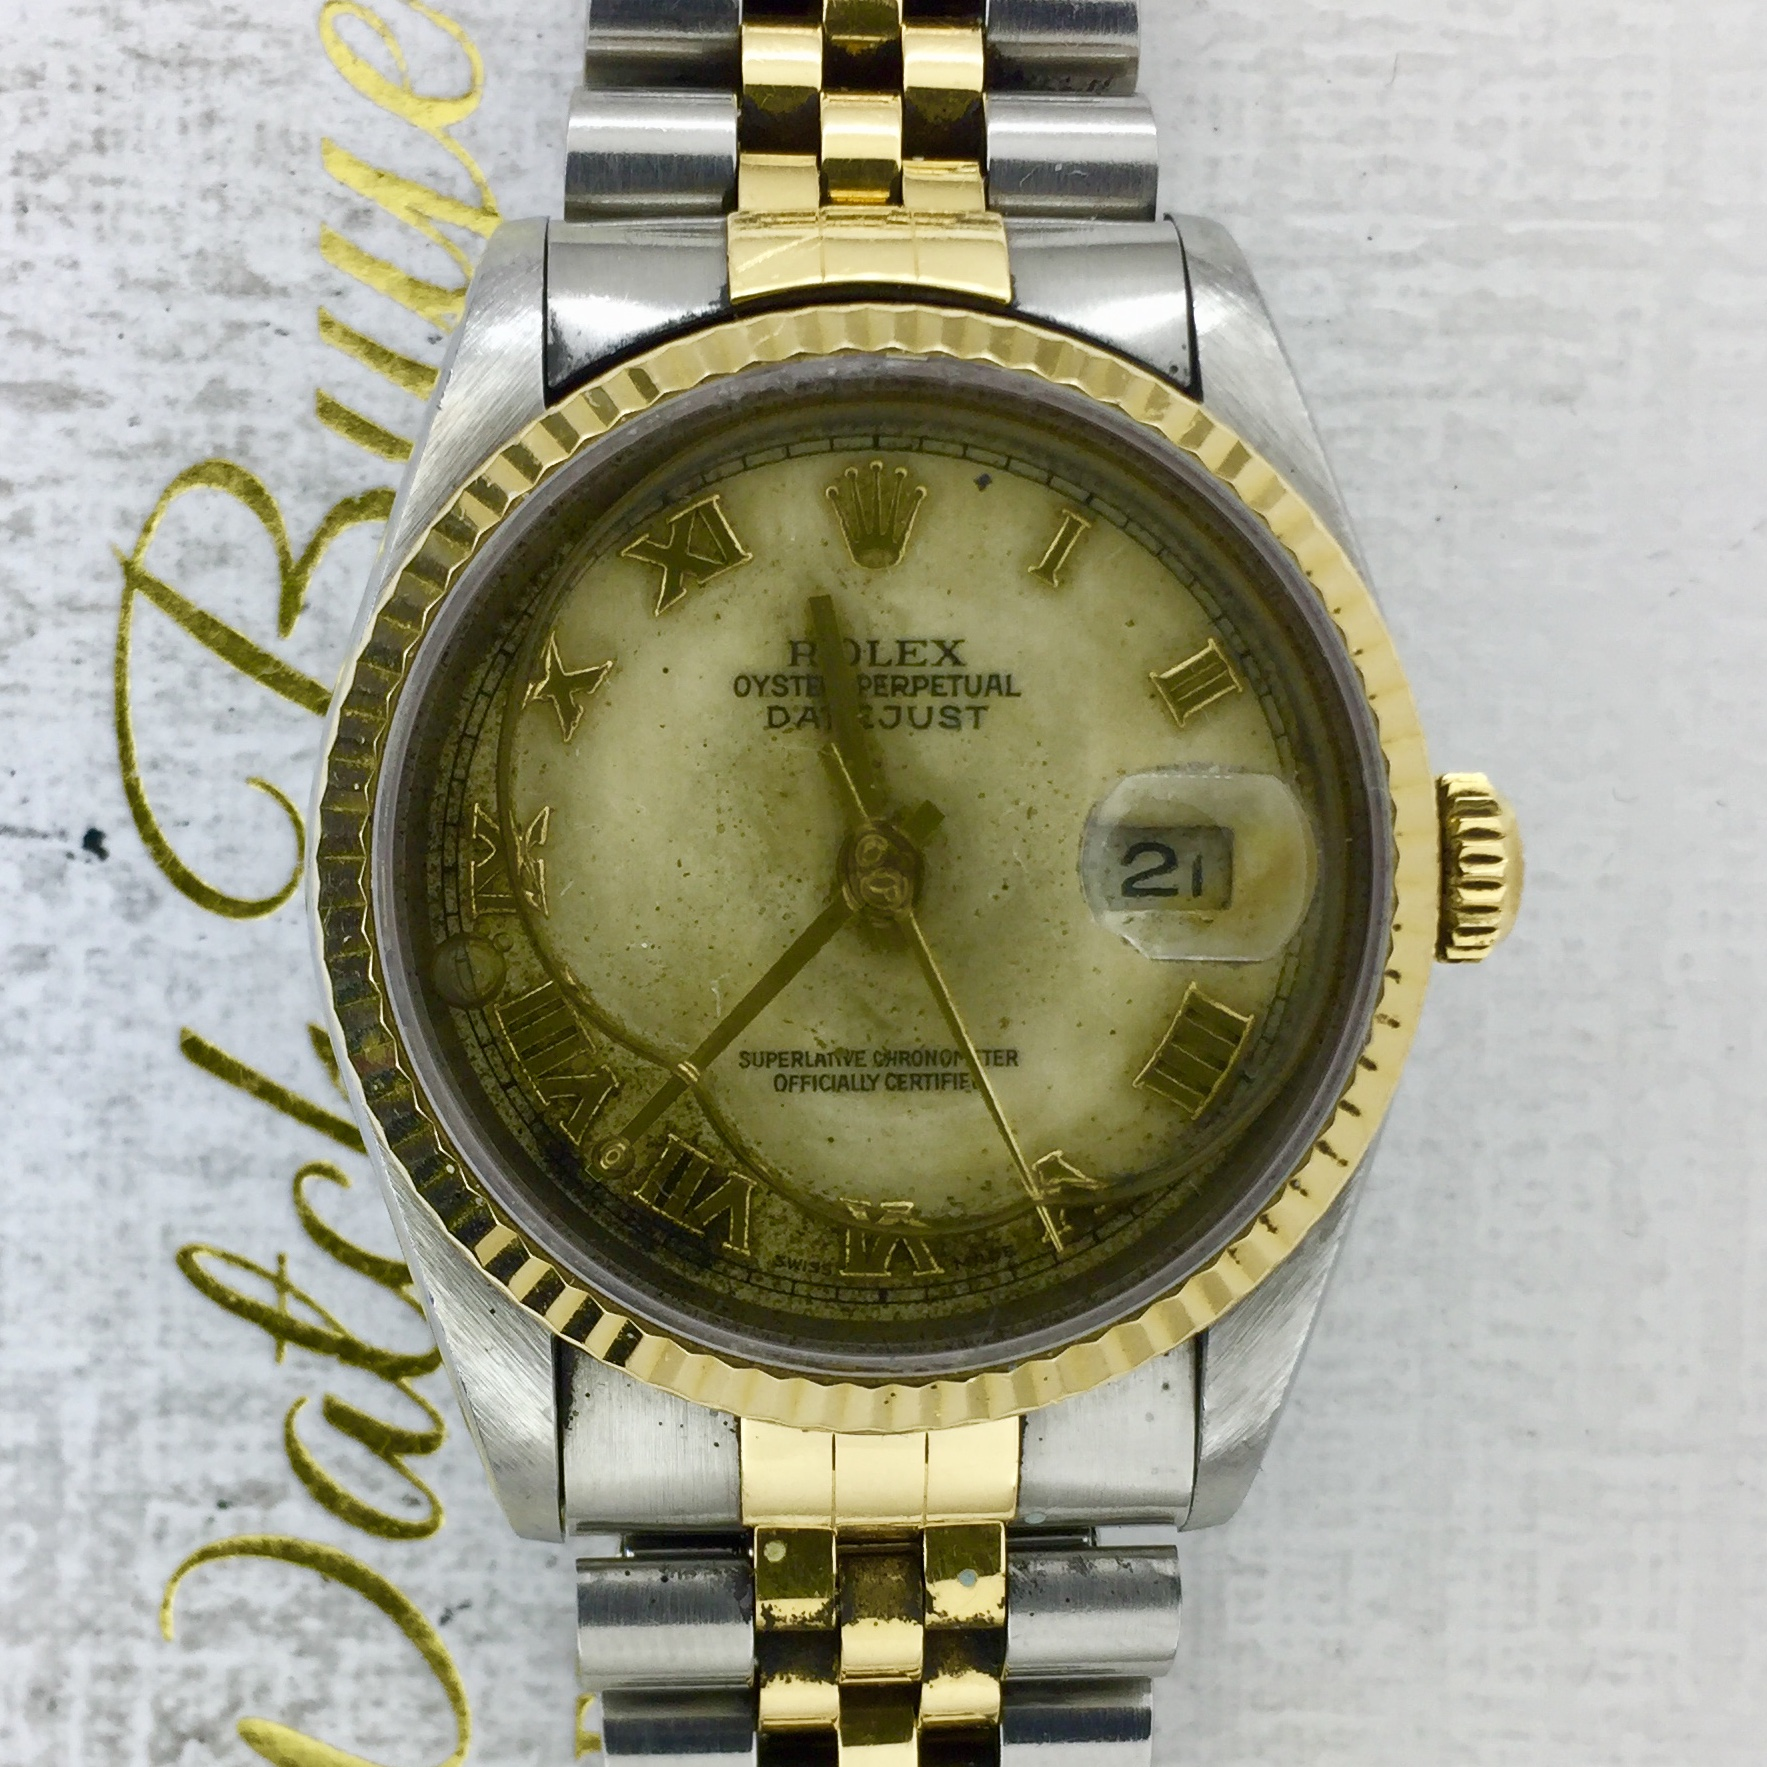 Rolex service Archives - The Watch Buyers Group